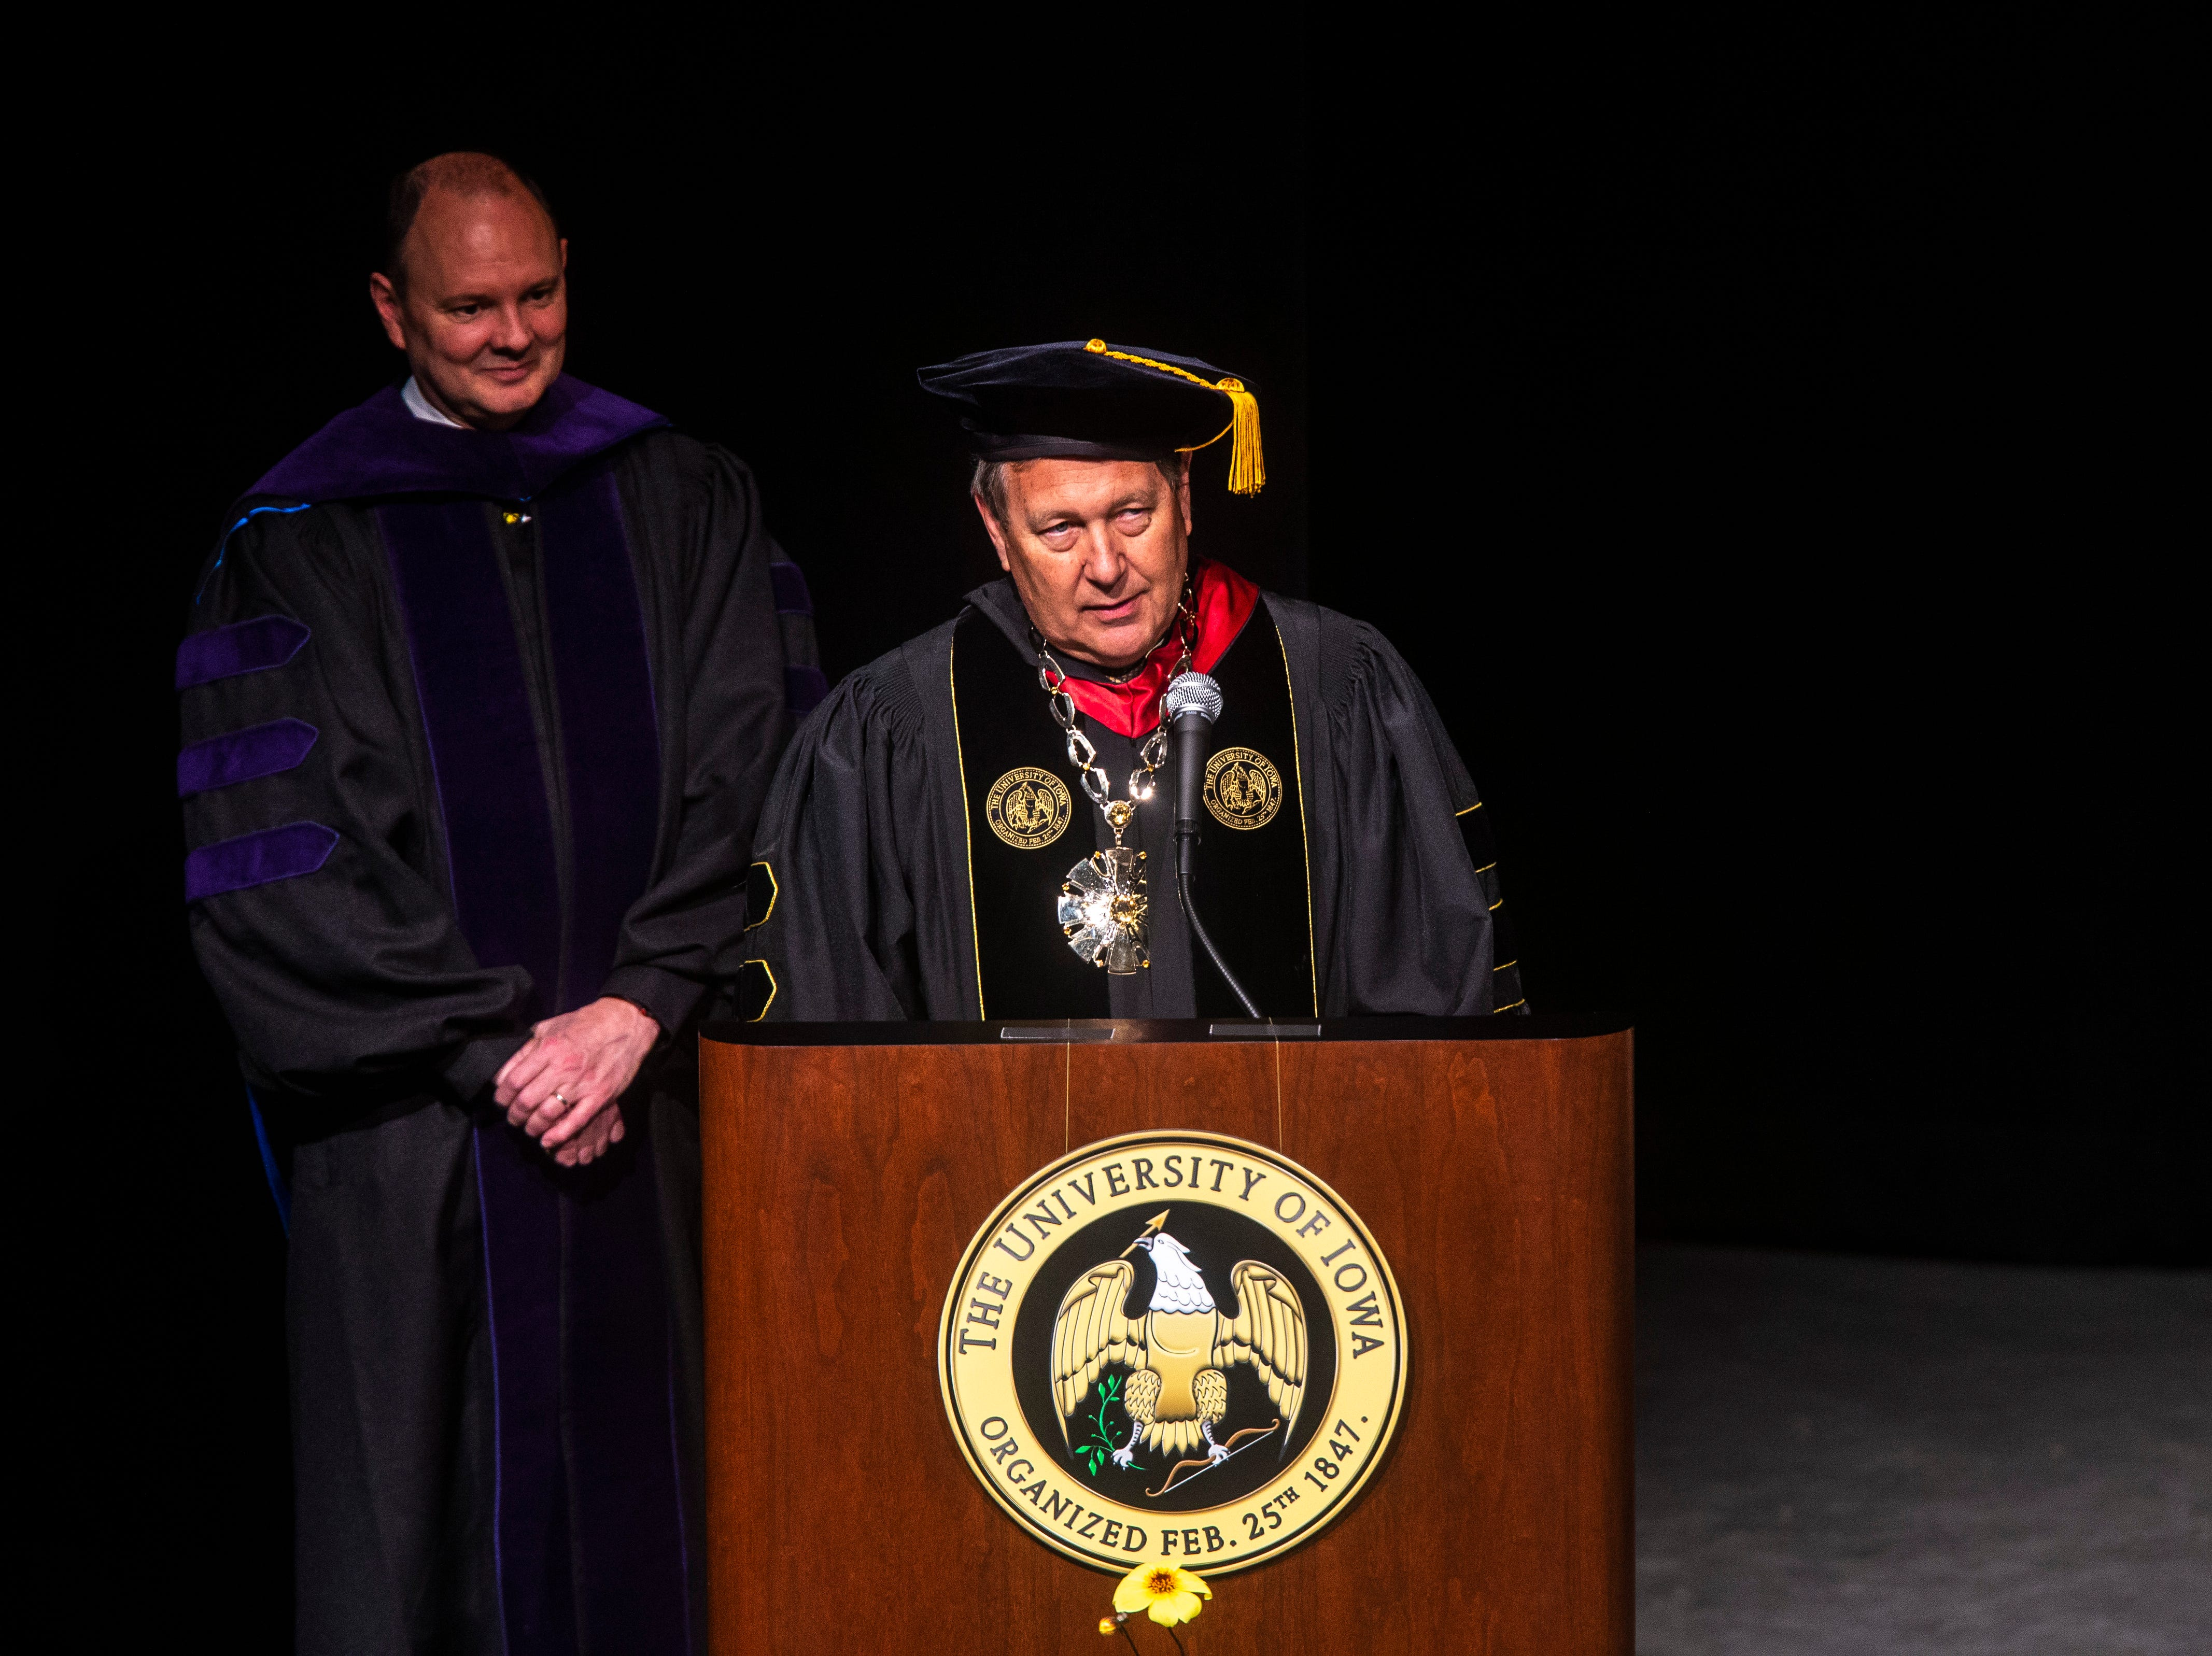 University of Iowa President J. Bruce Harreld speaks during the College of Law commencement ceremony, Friday, May 10, 2019, at Hancher Auditorium on the University of Iowa campus in Iowa City, Iowa. Kevin K. Washburn, N. William Hines Dean and Professor of Law, at left.